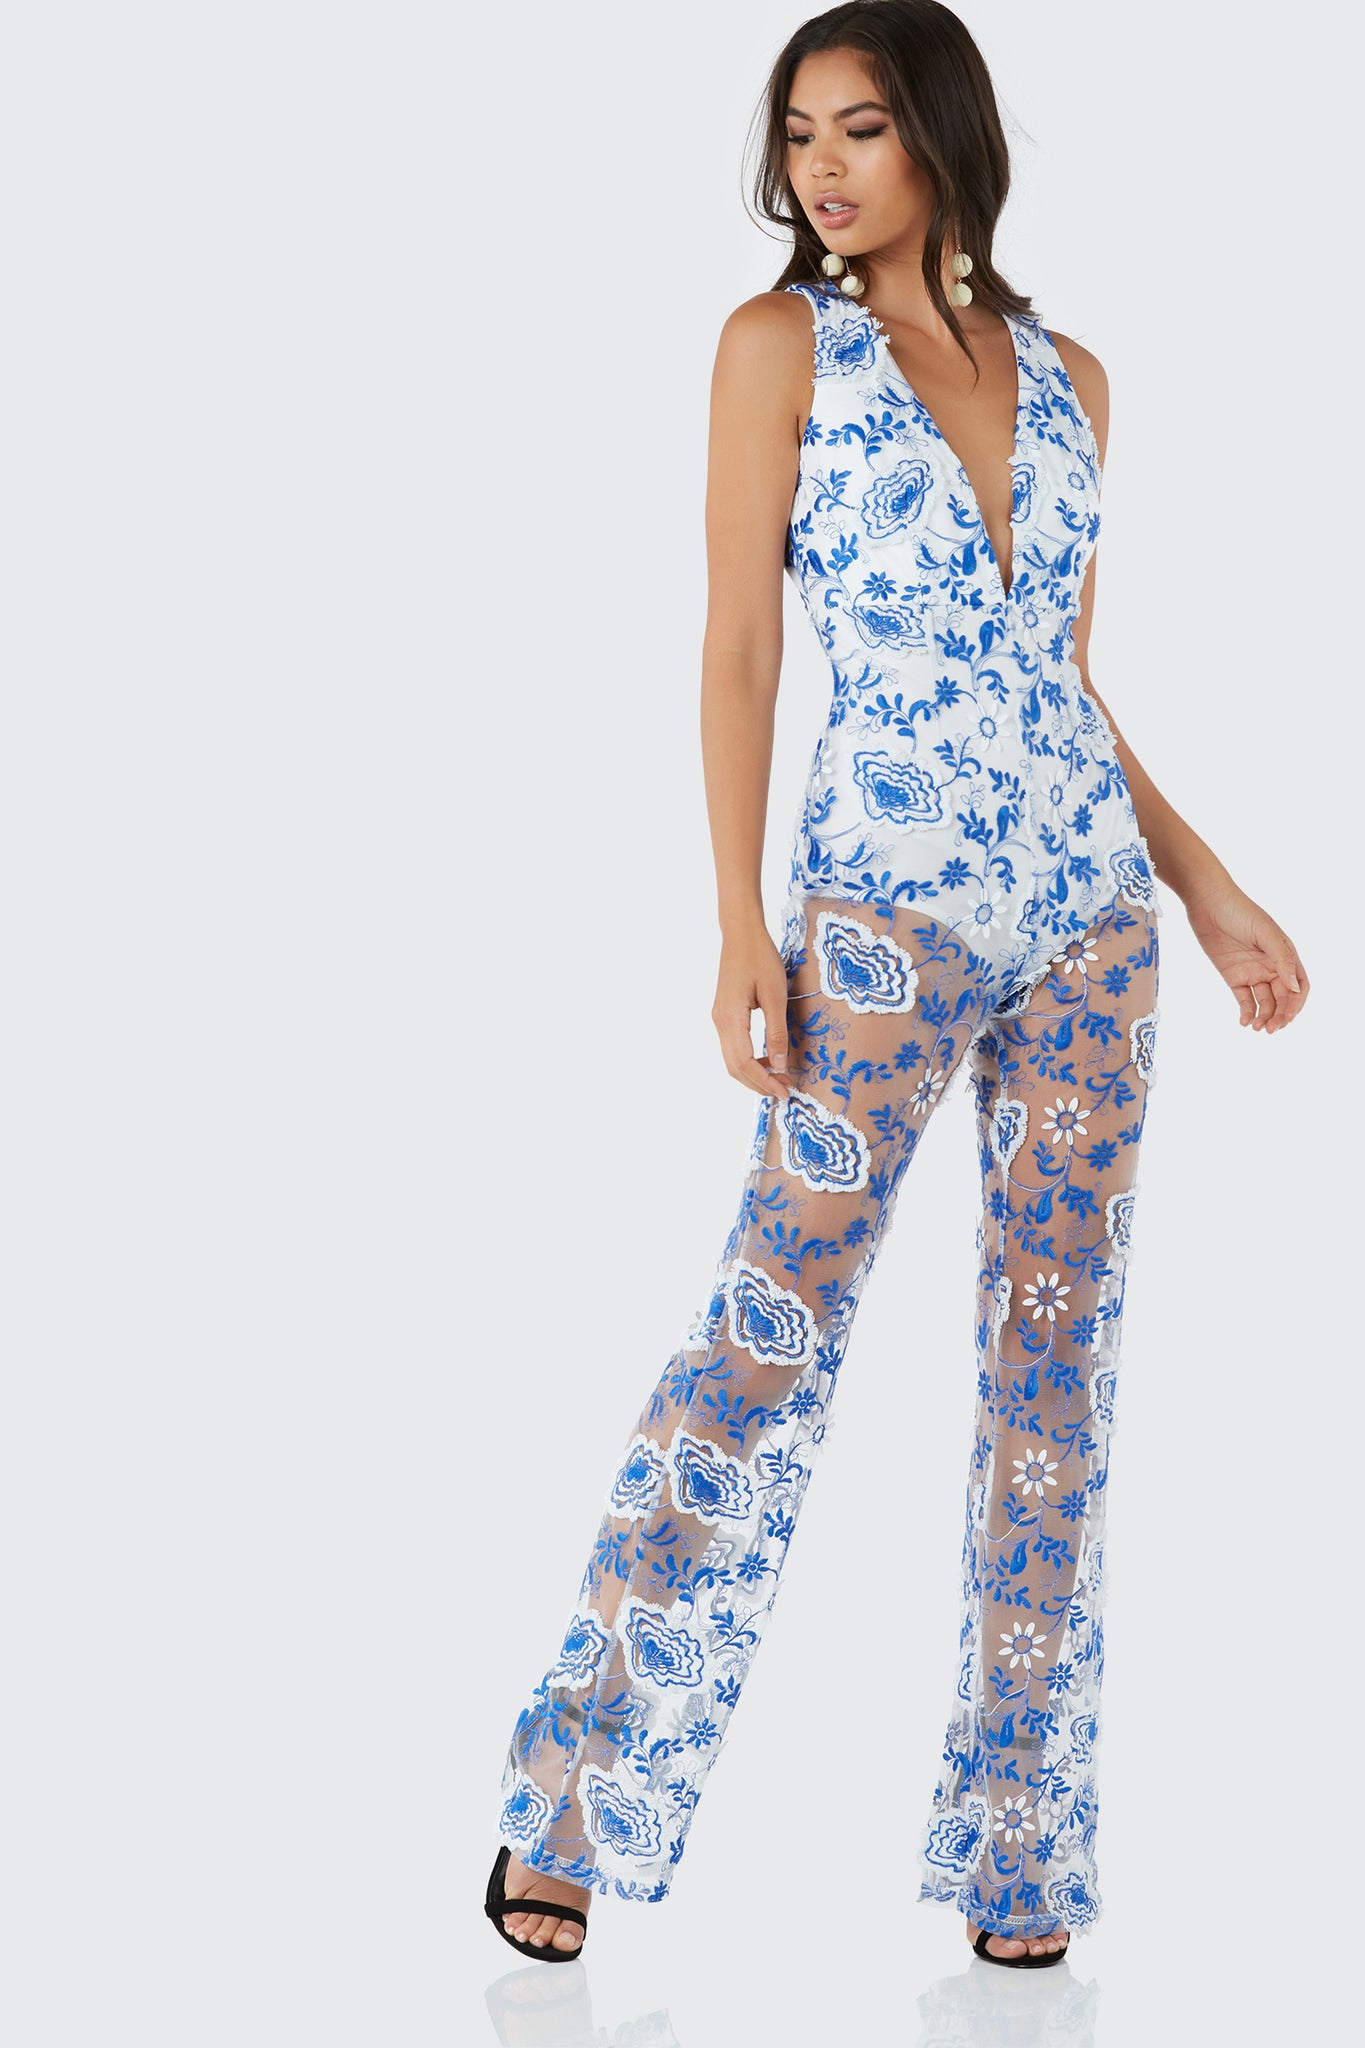 Stunning sleeveless jumpsuit with plunging V-neckline. Bodysuit lining with mesh overlay and bold embroidery throughout. Cut out in back with button and hidden zip closure.